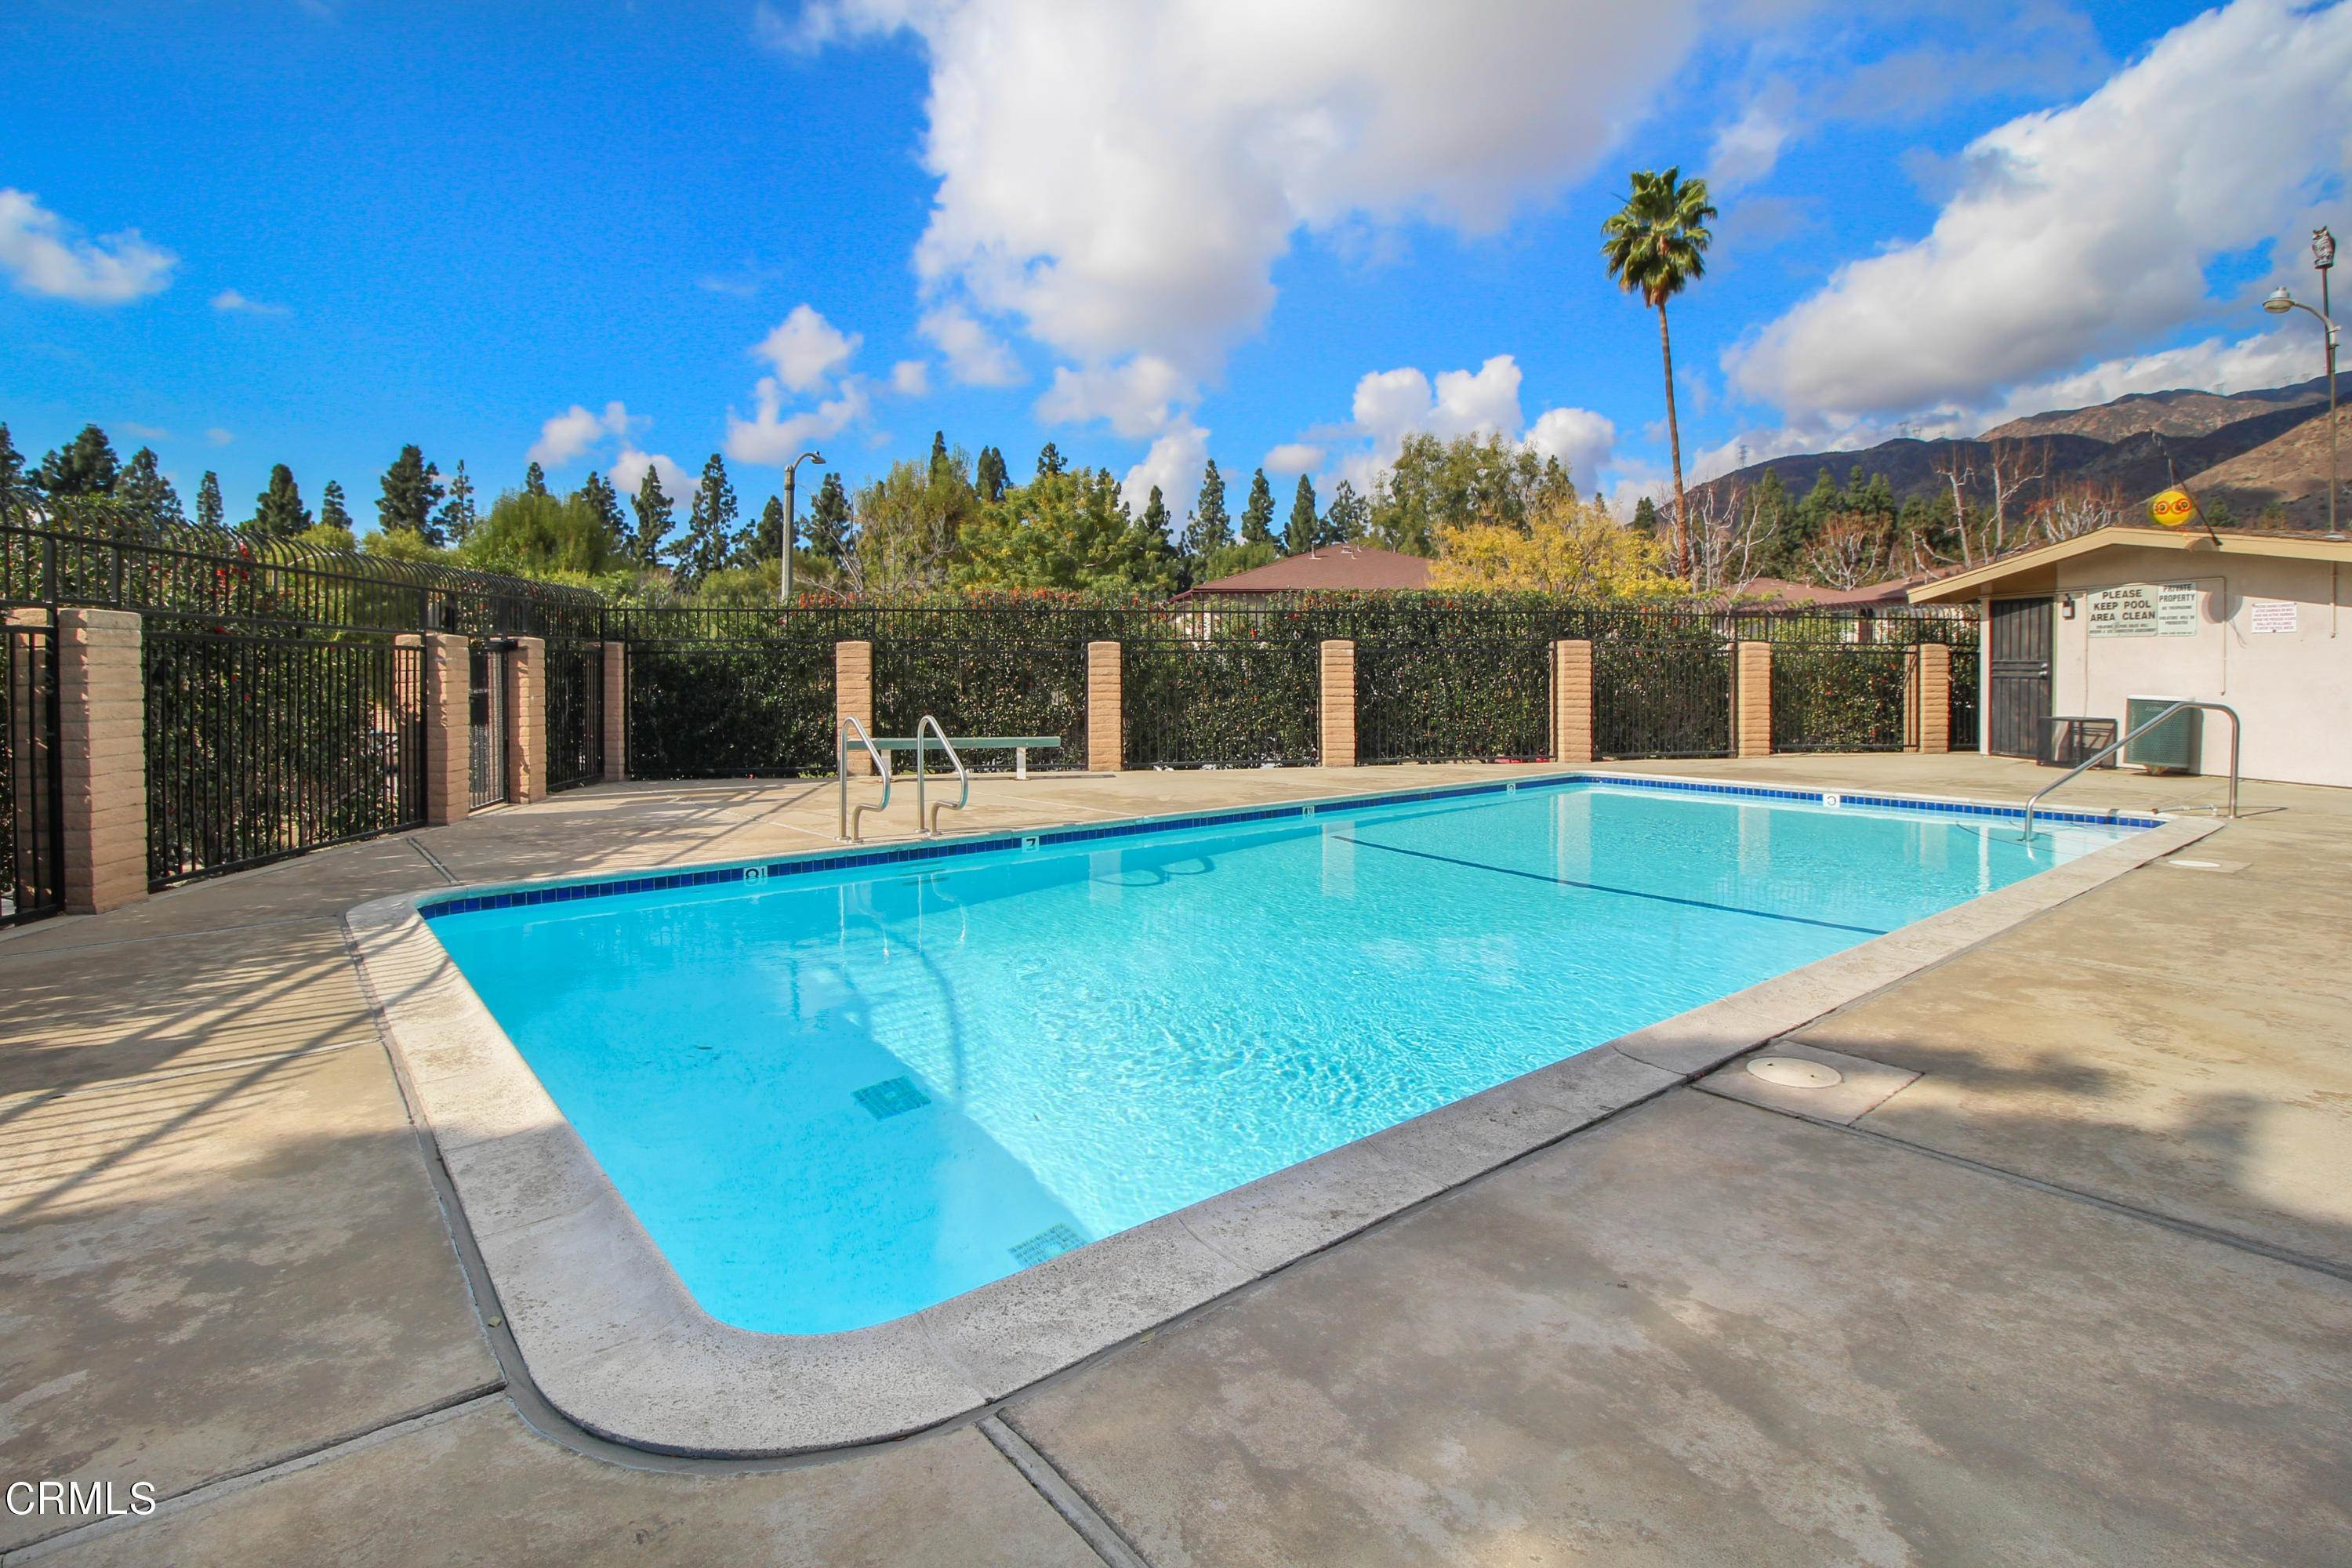 19. Condominiums for Sale at 1105 West Calle De La Luna #4 1105 West Calle De La Luna Azusa, California 91702 United States